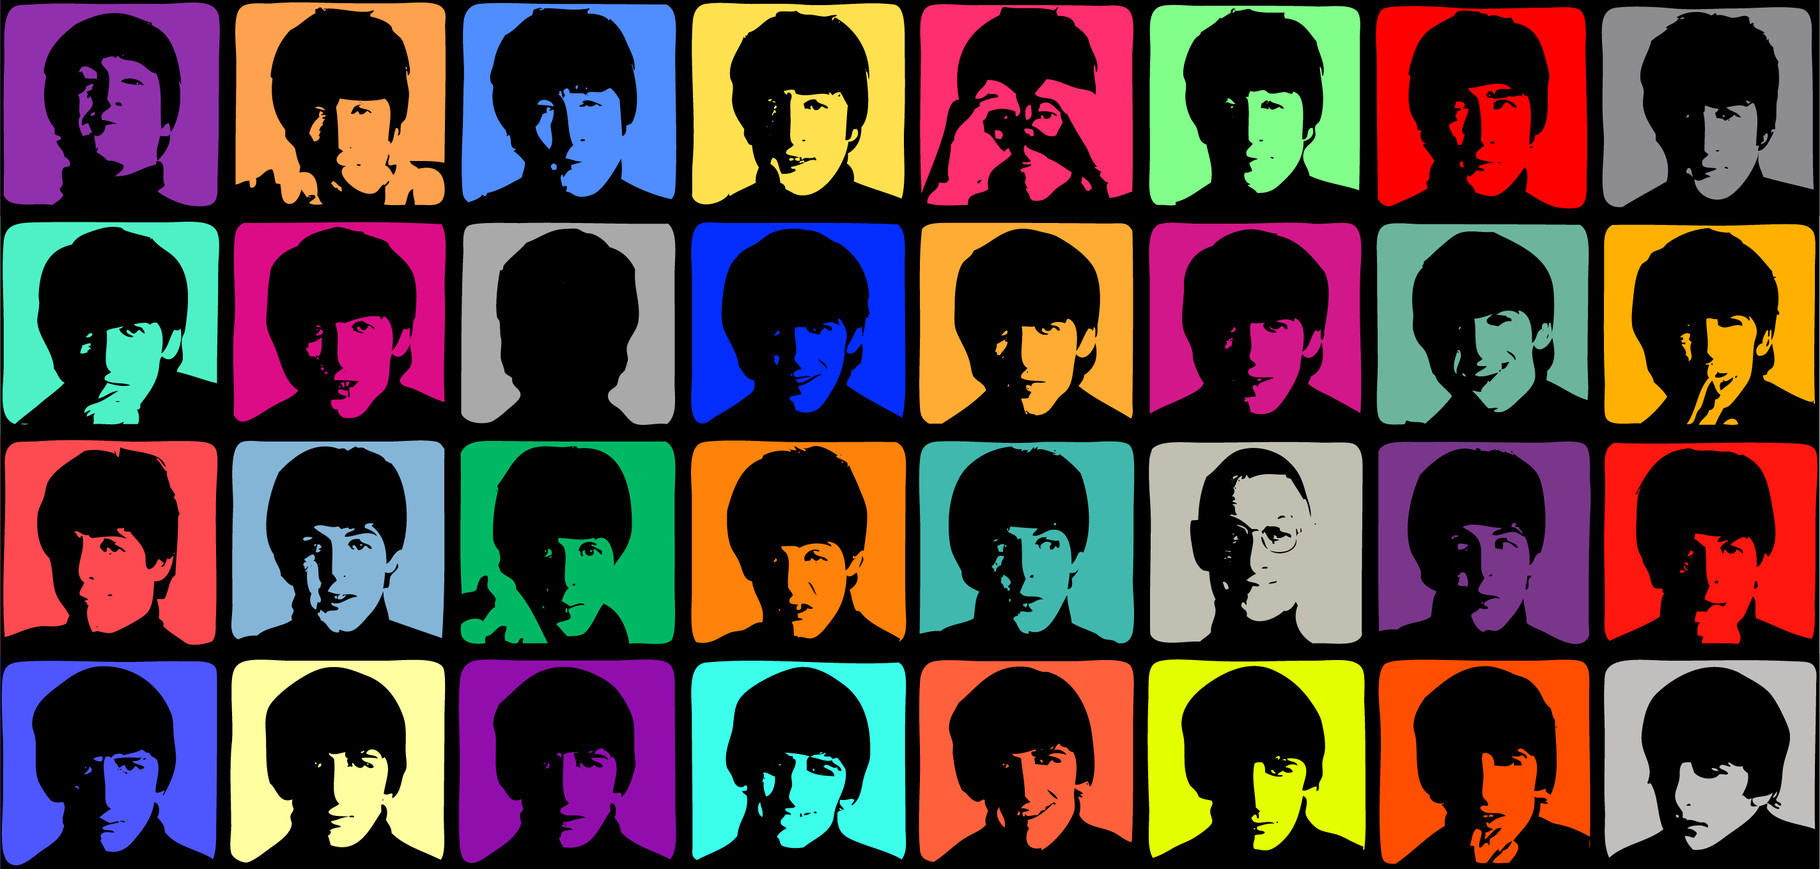 'The Beatles' von Andy Warhol